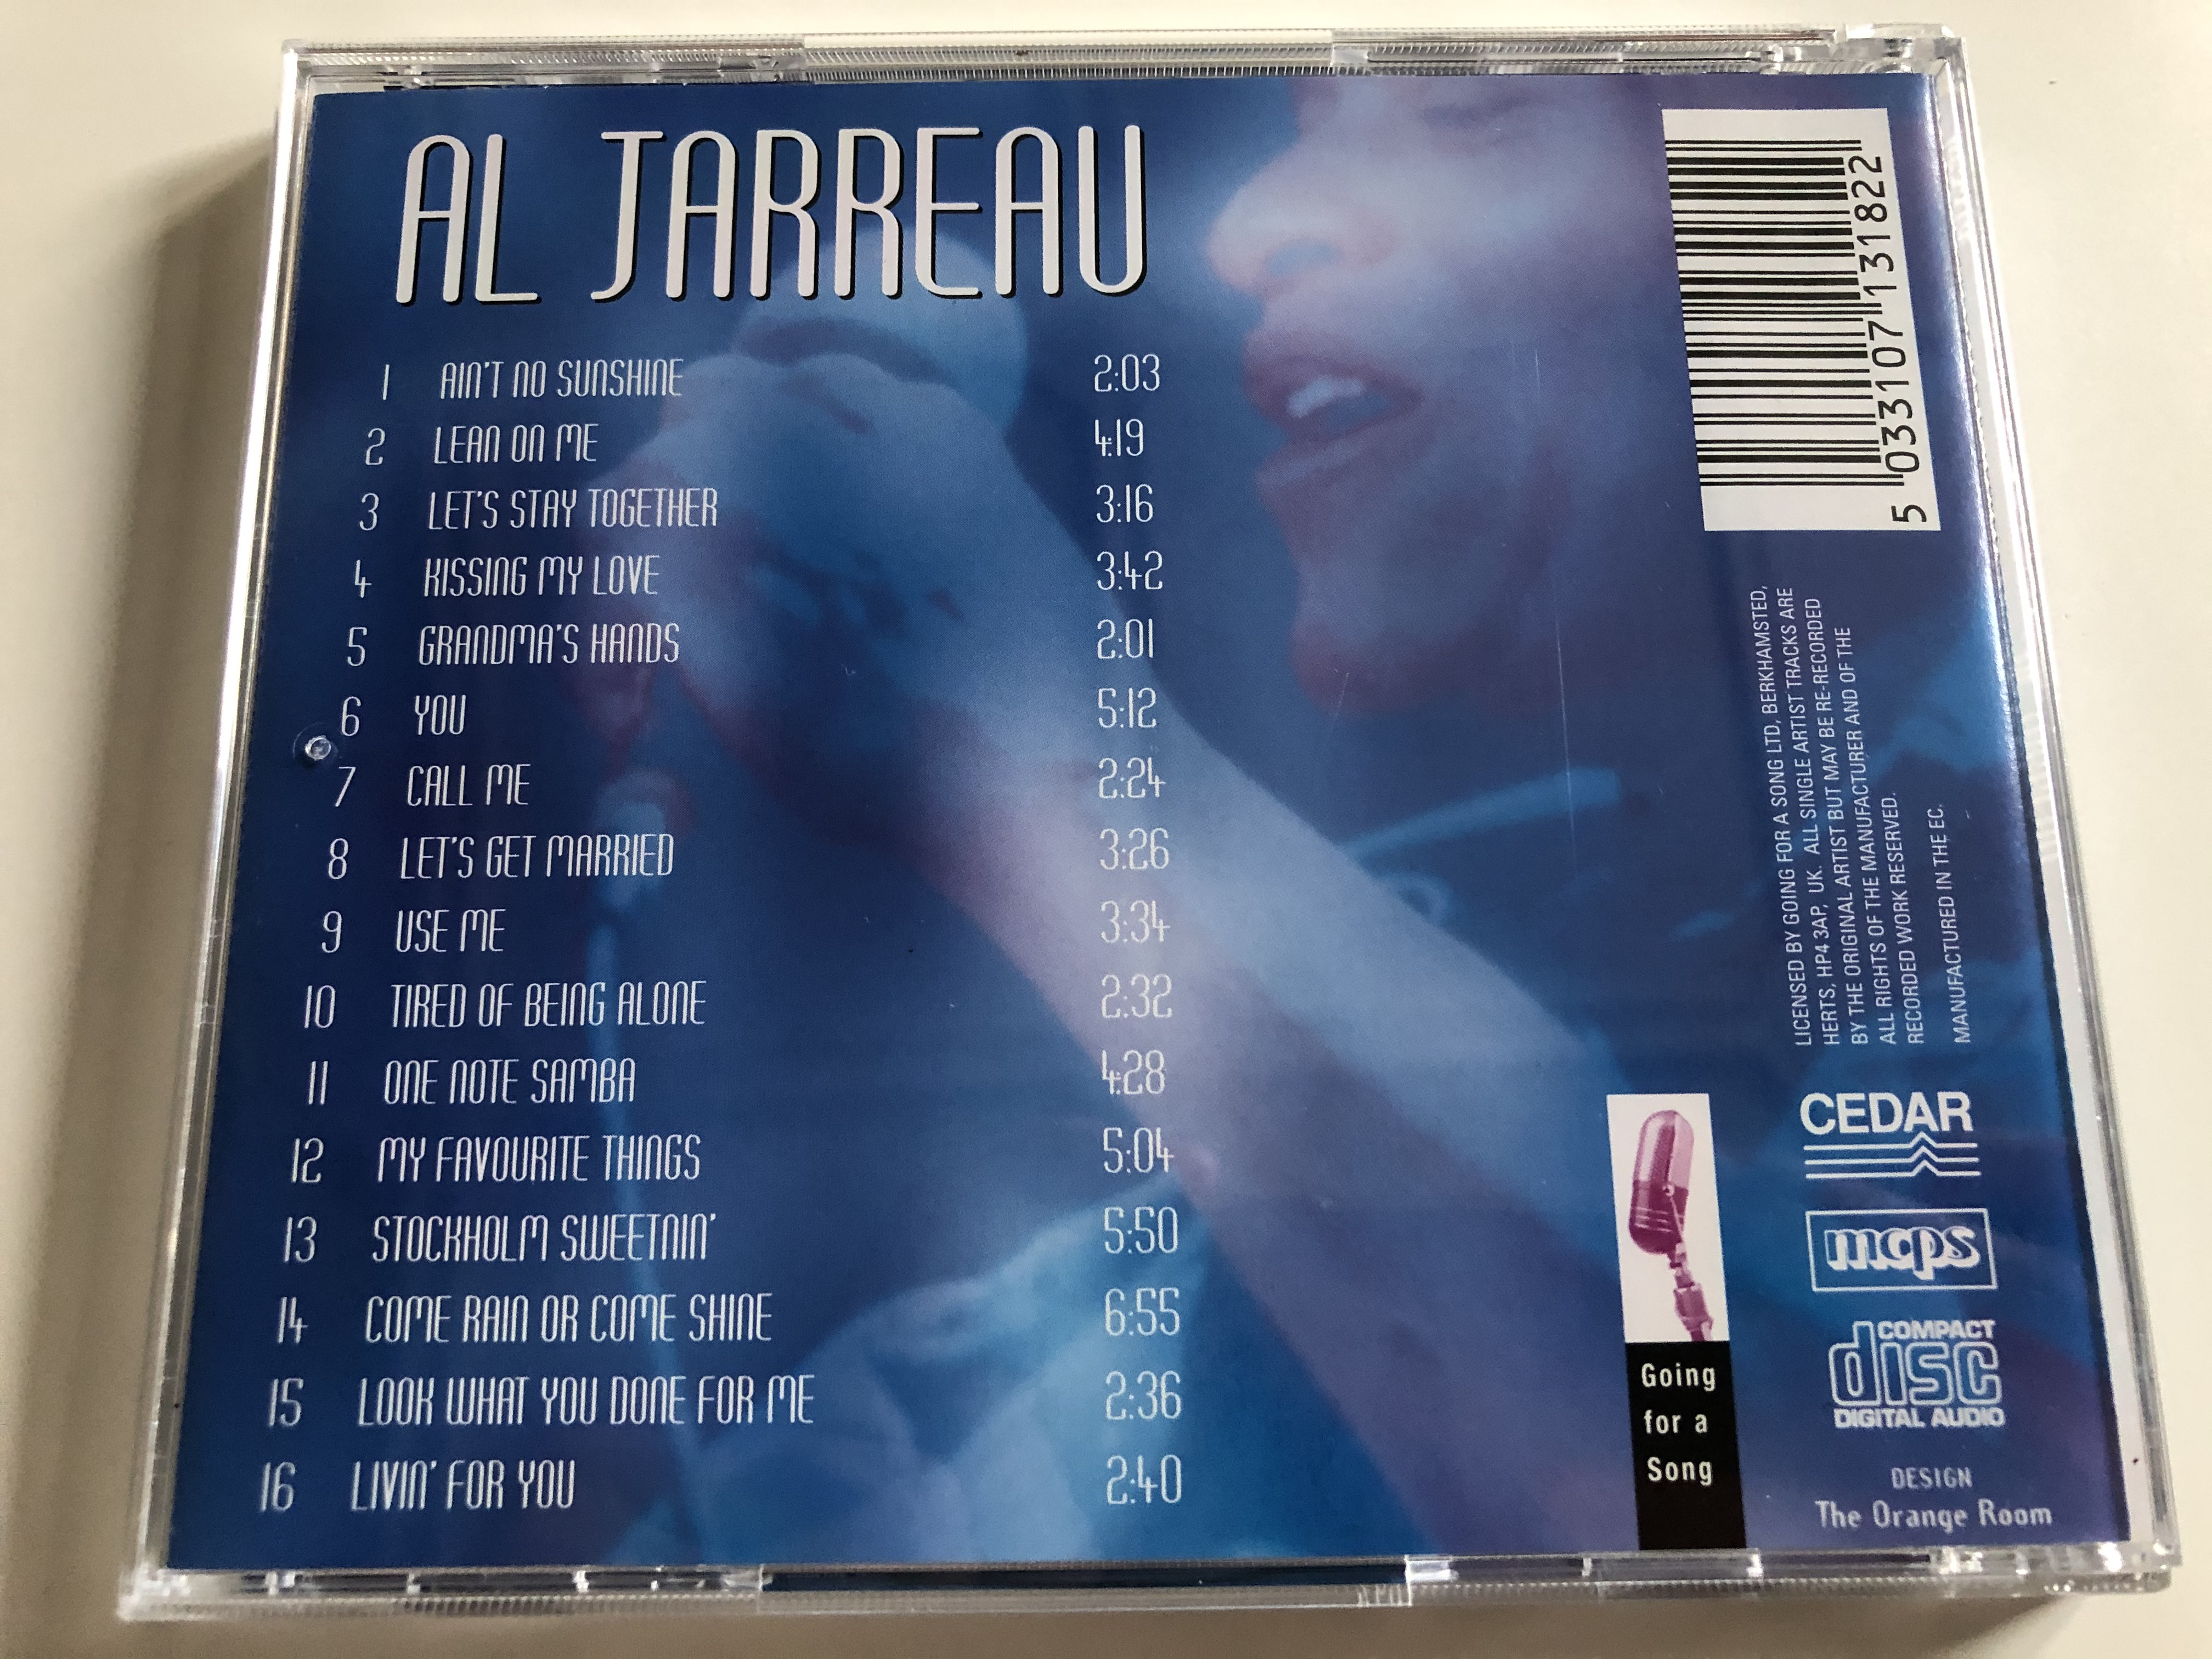 al-jarreau-featuring-ain-t-no-sunshine-come-rain-or-come-shine-lean-on-me-let-s-stay-together-and-many-more-going-for-a-song-audio-cd-gfs318-5-.jpg